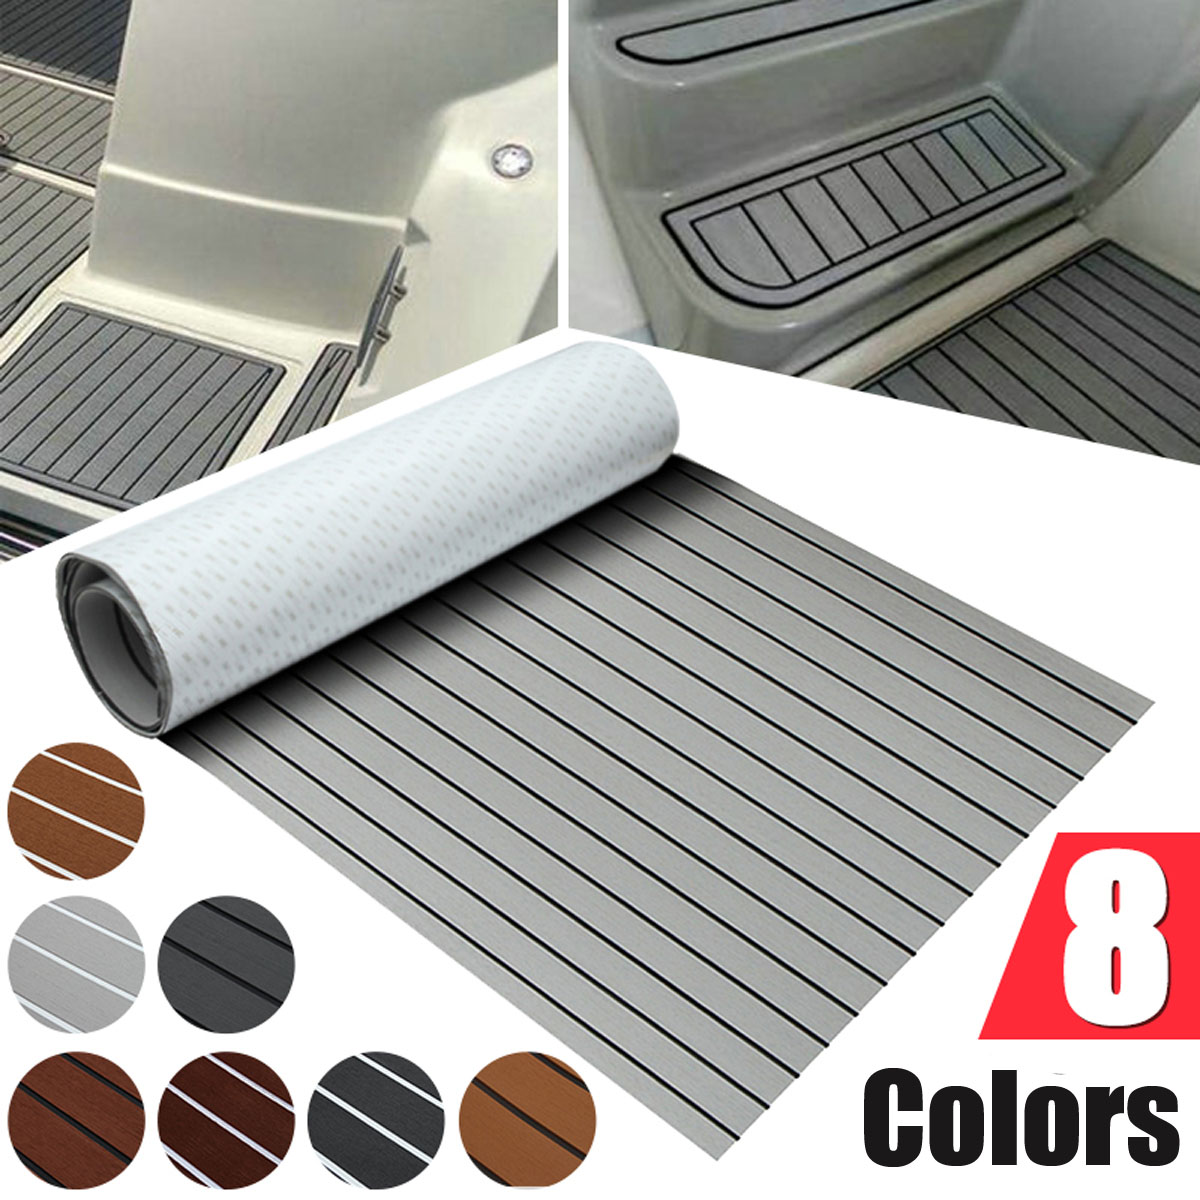 8 Styles Self-Adhesive 900x2000x5mm Foam Teak Decking EVA Foam Marine Flooring Faux Boat Decking Sheet Accessories Marine